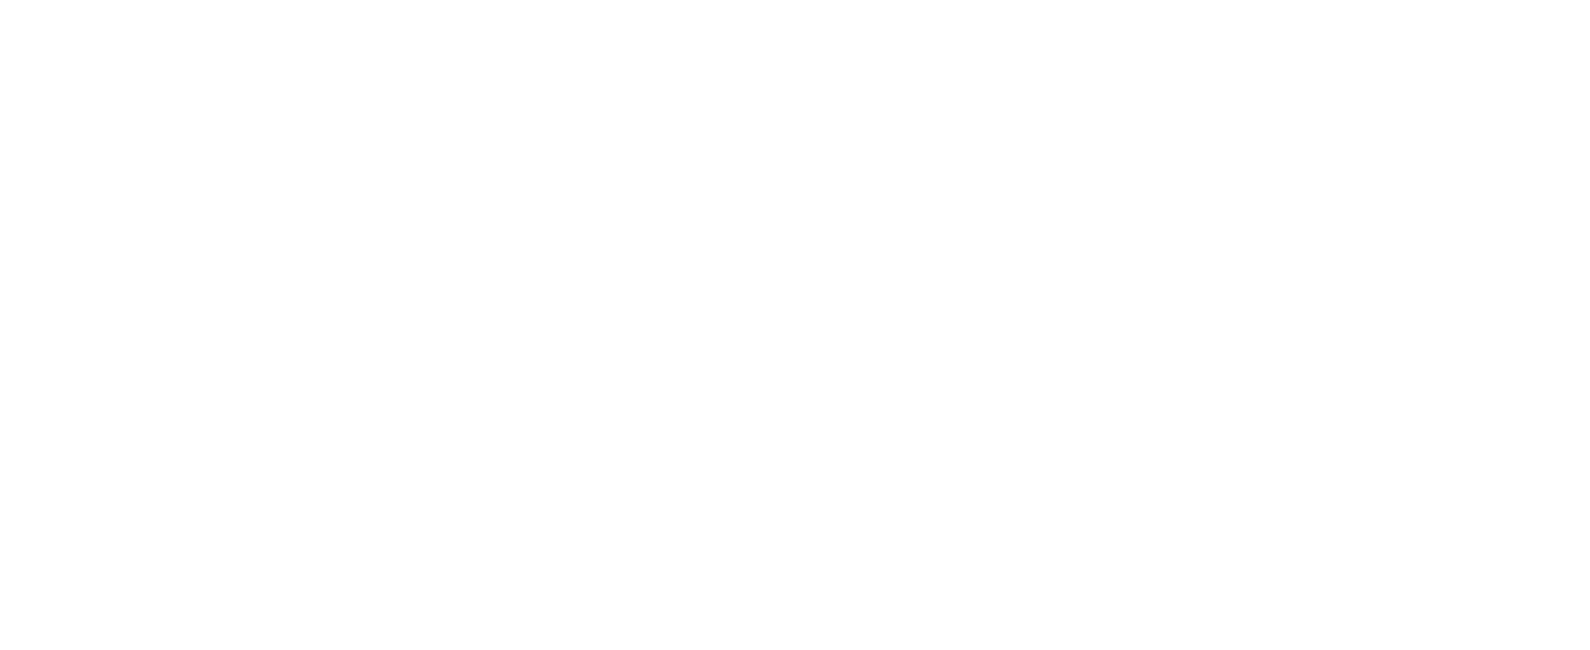 jacuzzi_logo.png